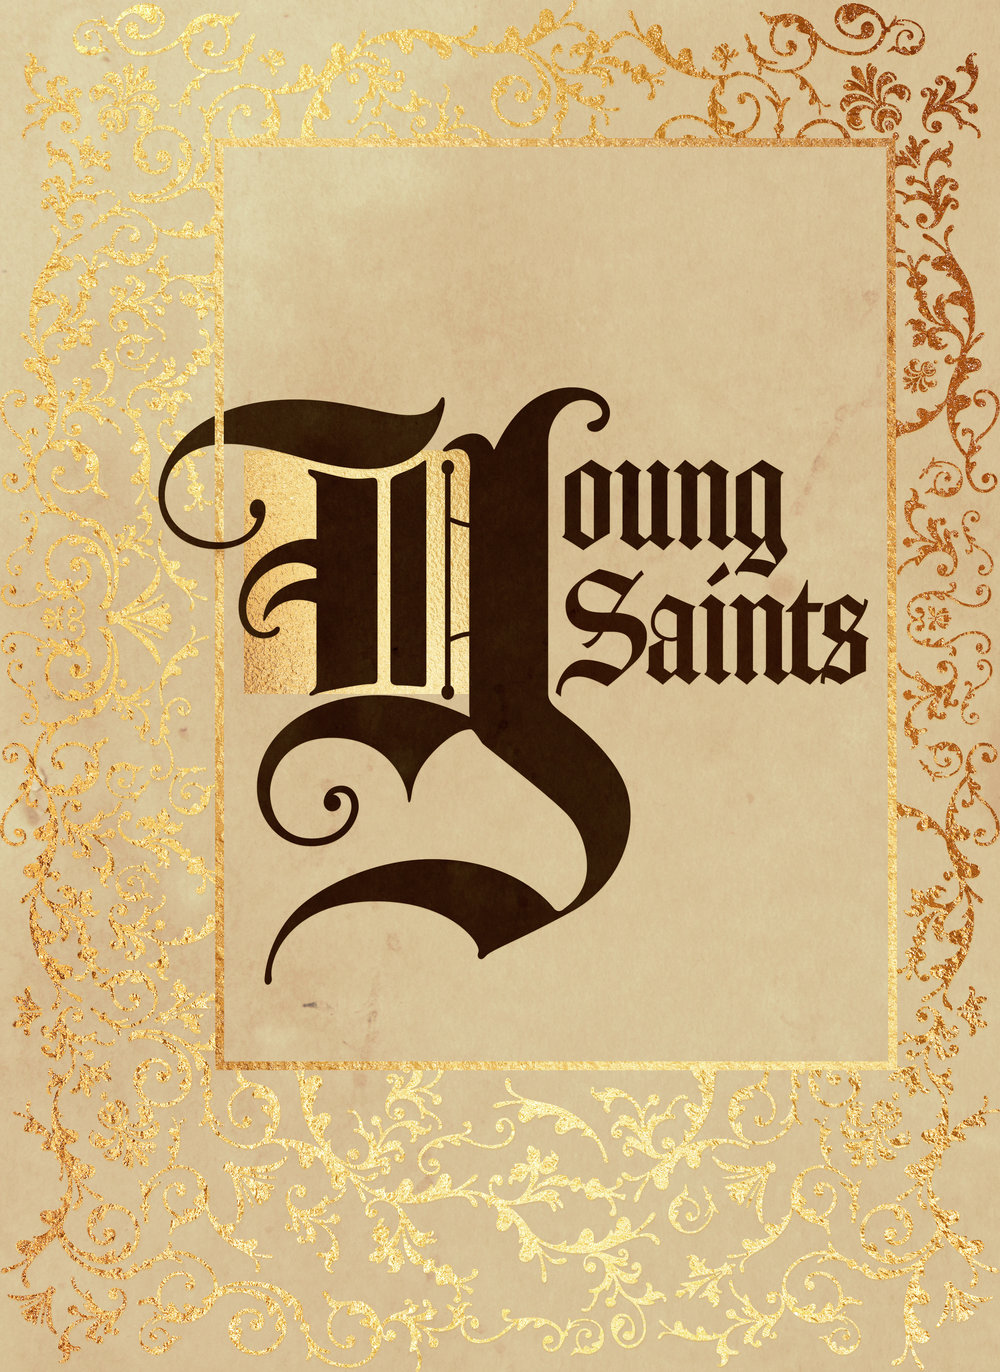 """MEET THE """"YOUNG SAINTS"""" OF BETHEL WHO GO TO COLLEGE TO PERFORM MIRACLES  LINK"""